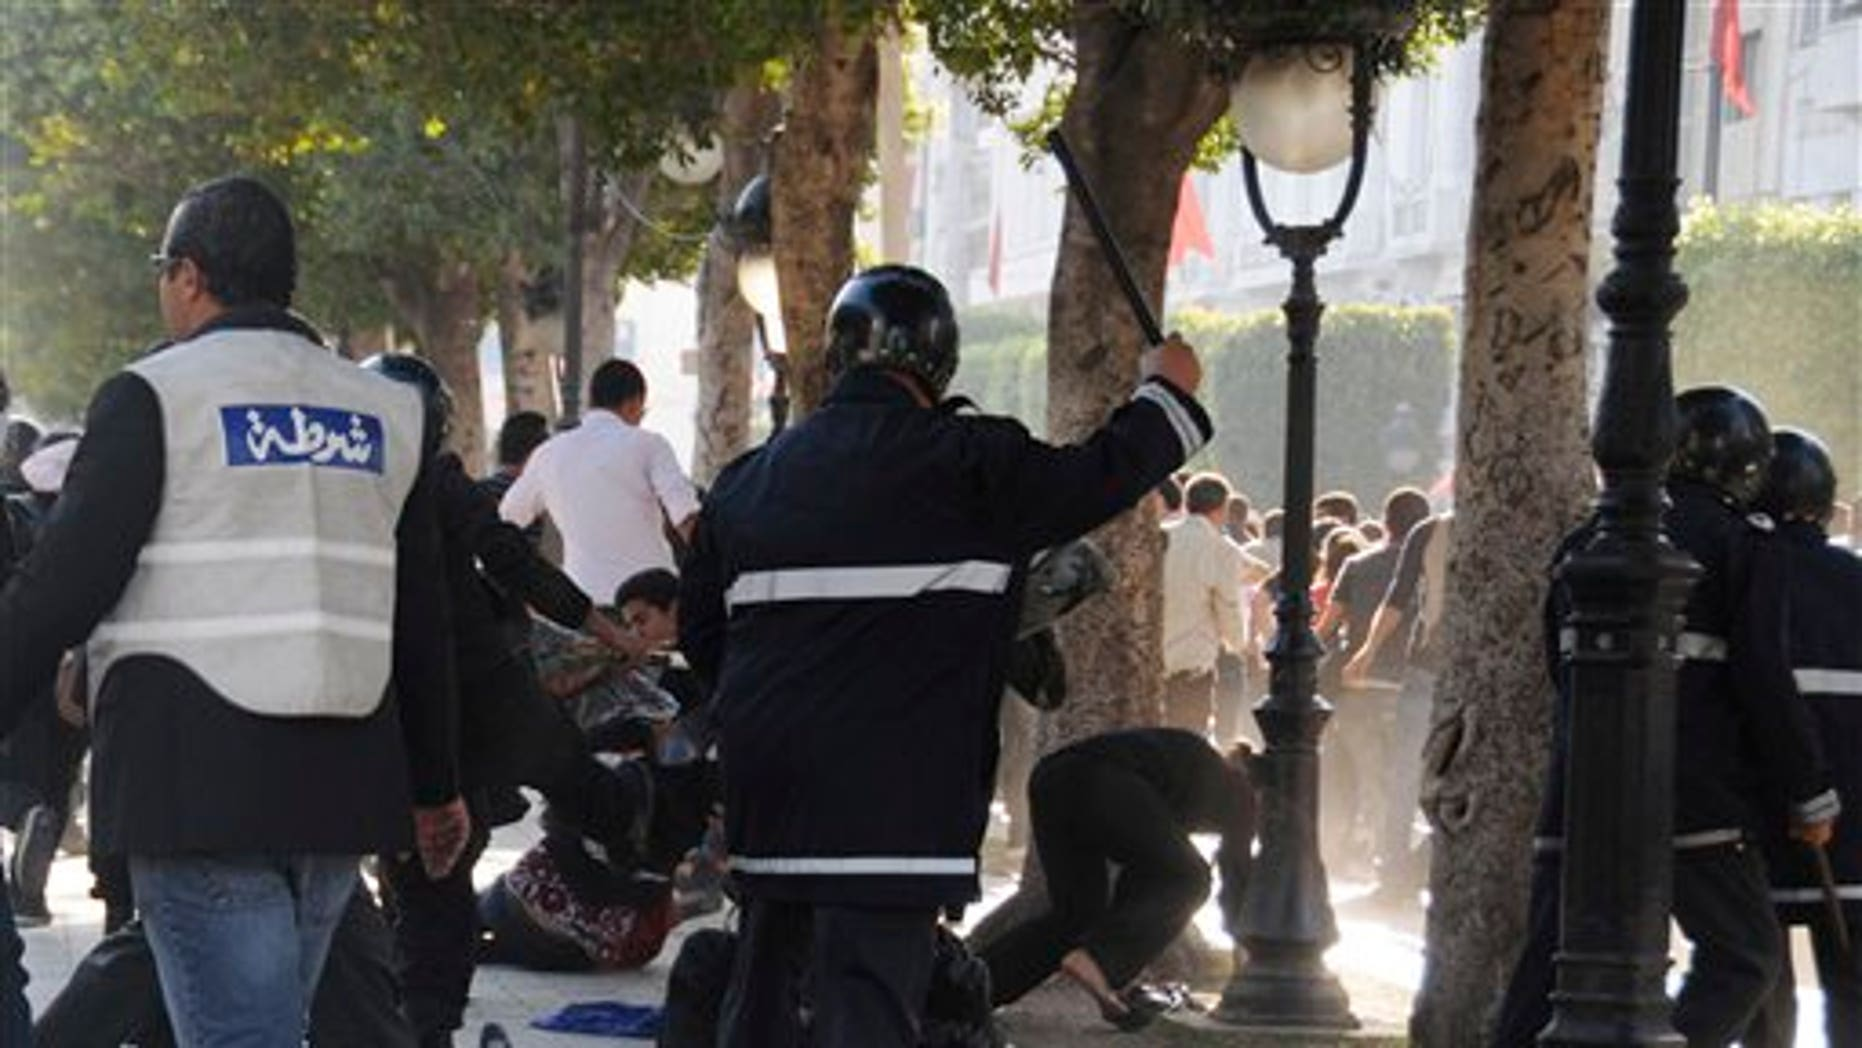 May 5: Tunisian police officers disperse hundreds of demonstrators during clashes in Tunis. The protesters complained Tunisia's new caretaker government has not followed through with the people's revolutionary aspirations. (AP)